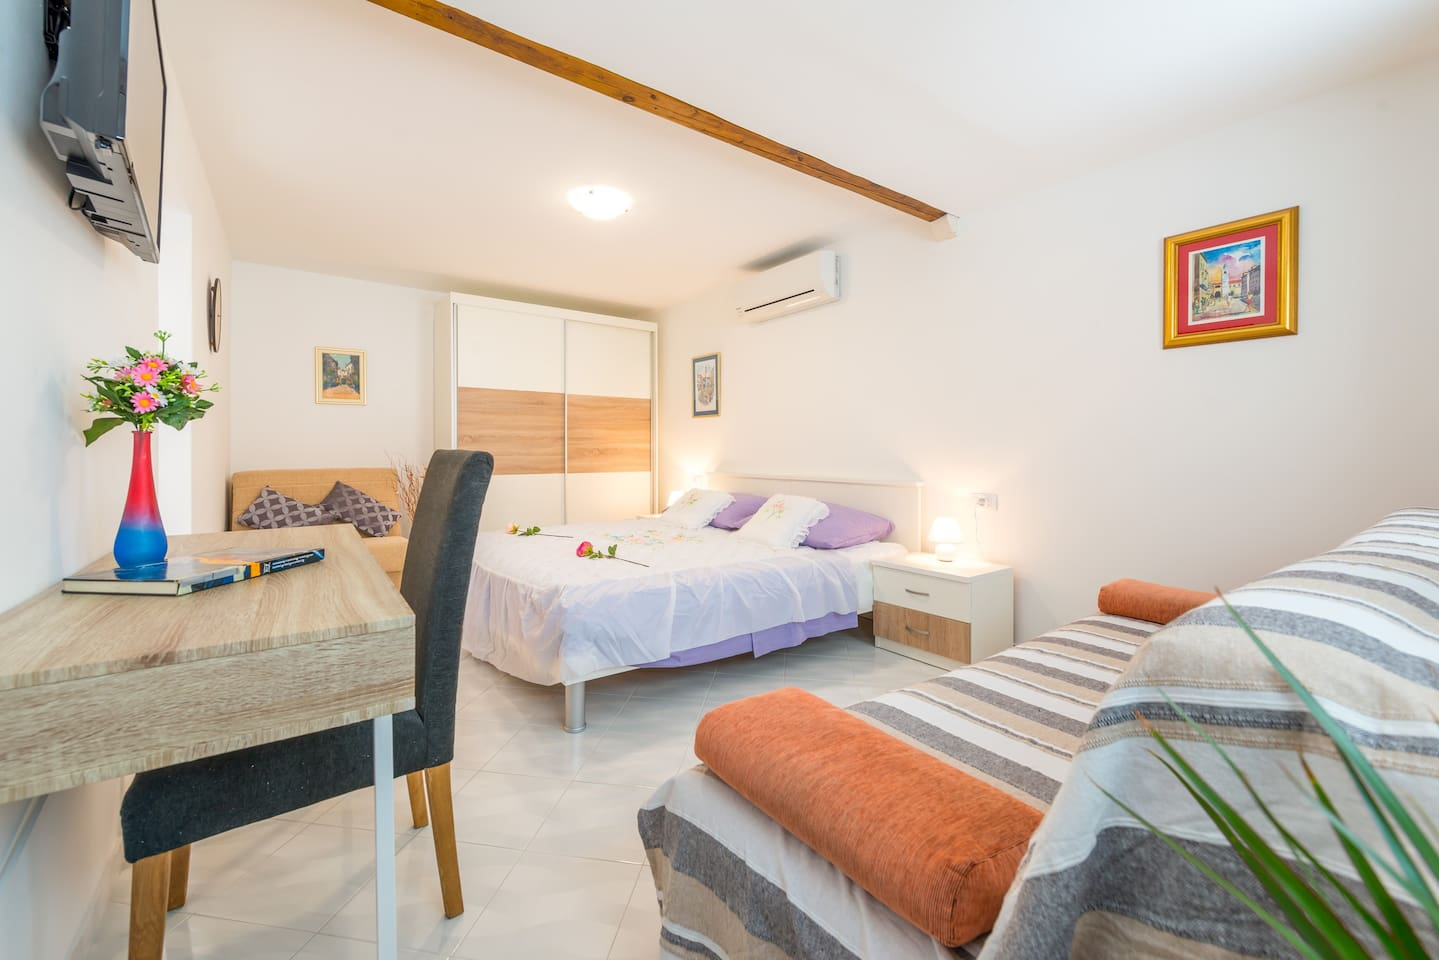 Apartment has free wi-fi, flat screen TV with satelite channels and Air-Condition